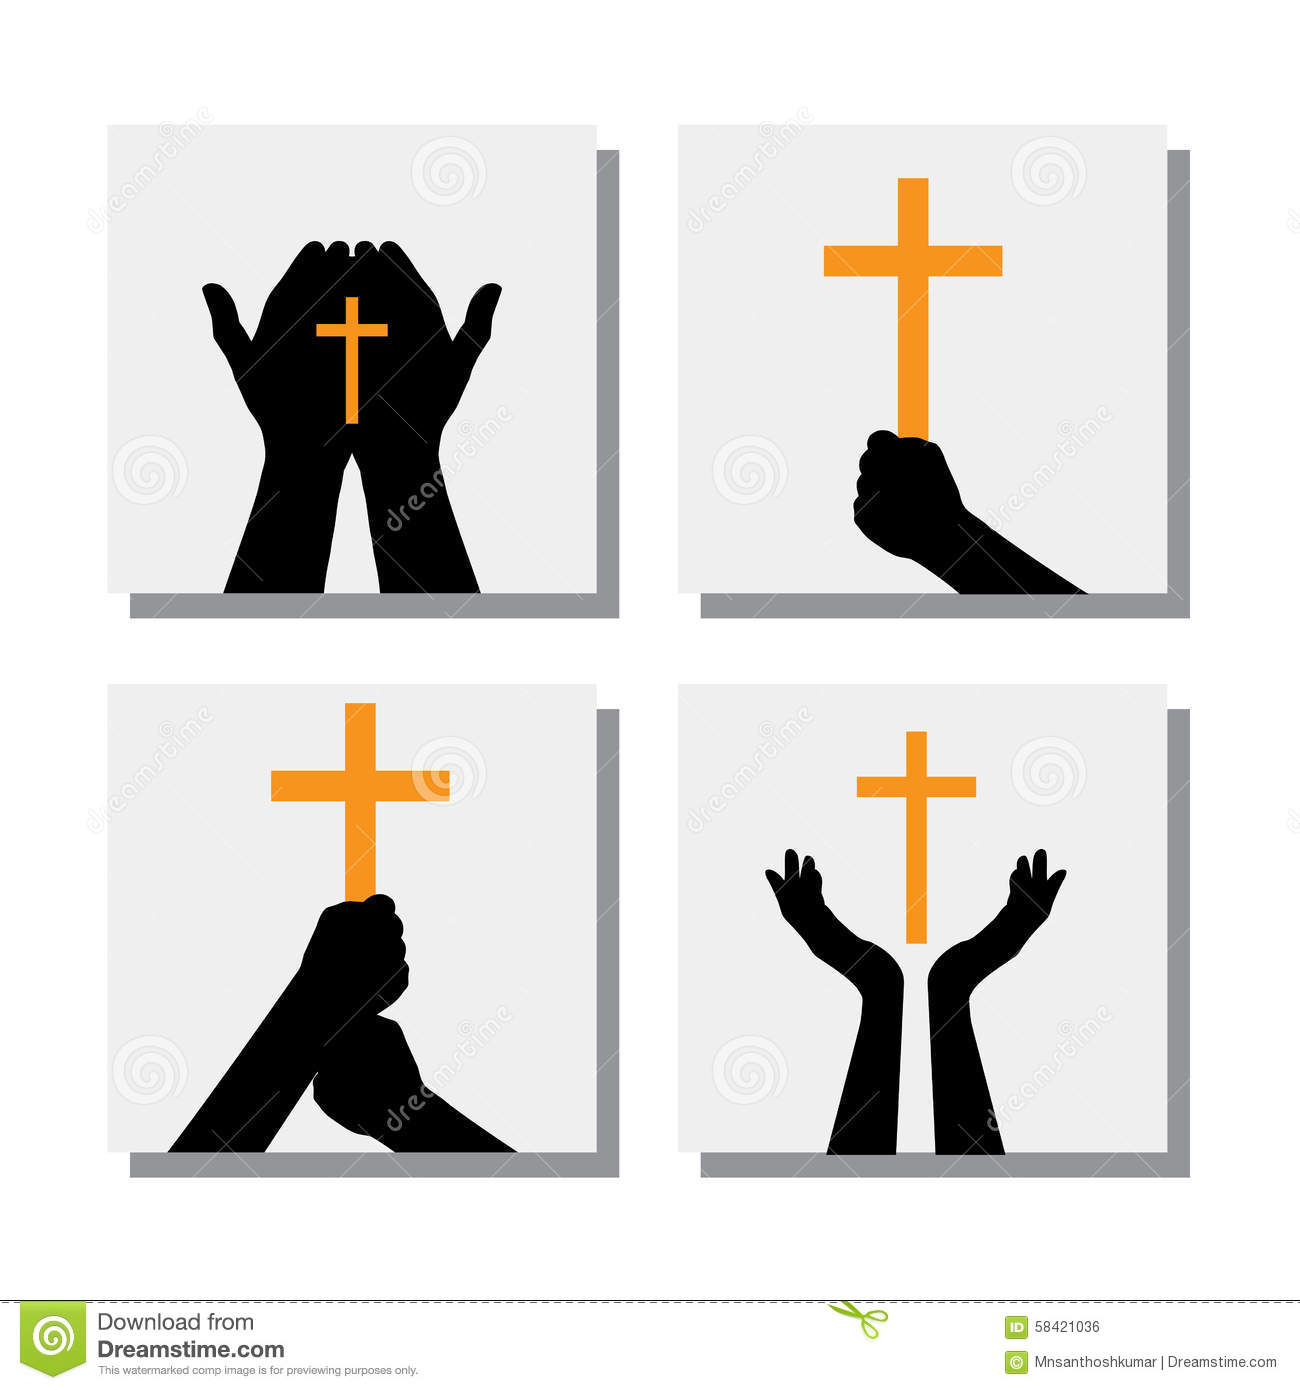 Also Represents People Praying To God Seeking Blessings From Jesus